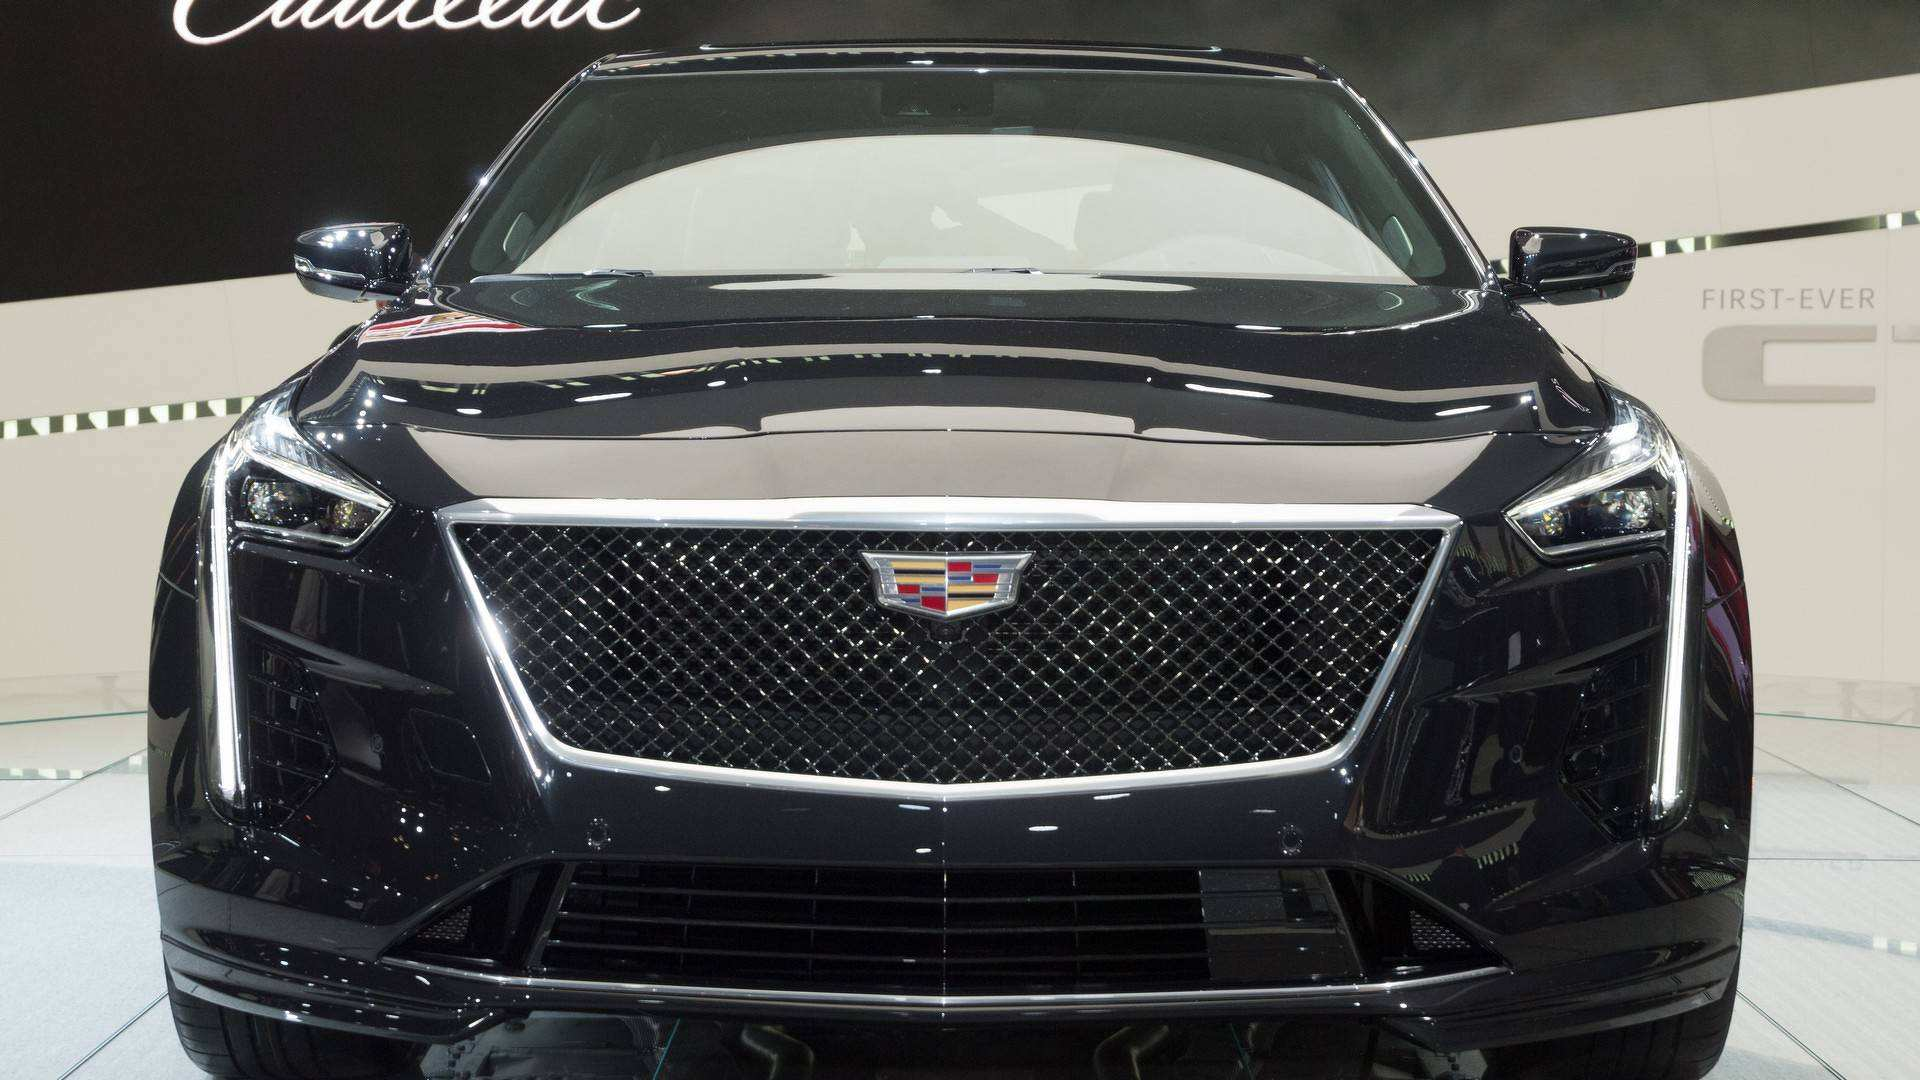 21 New 2019 Cadillac Twin Turbo V8 Photos